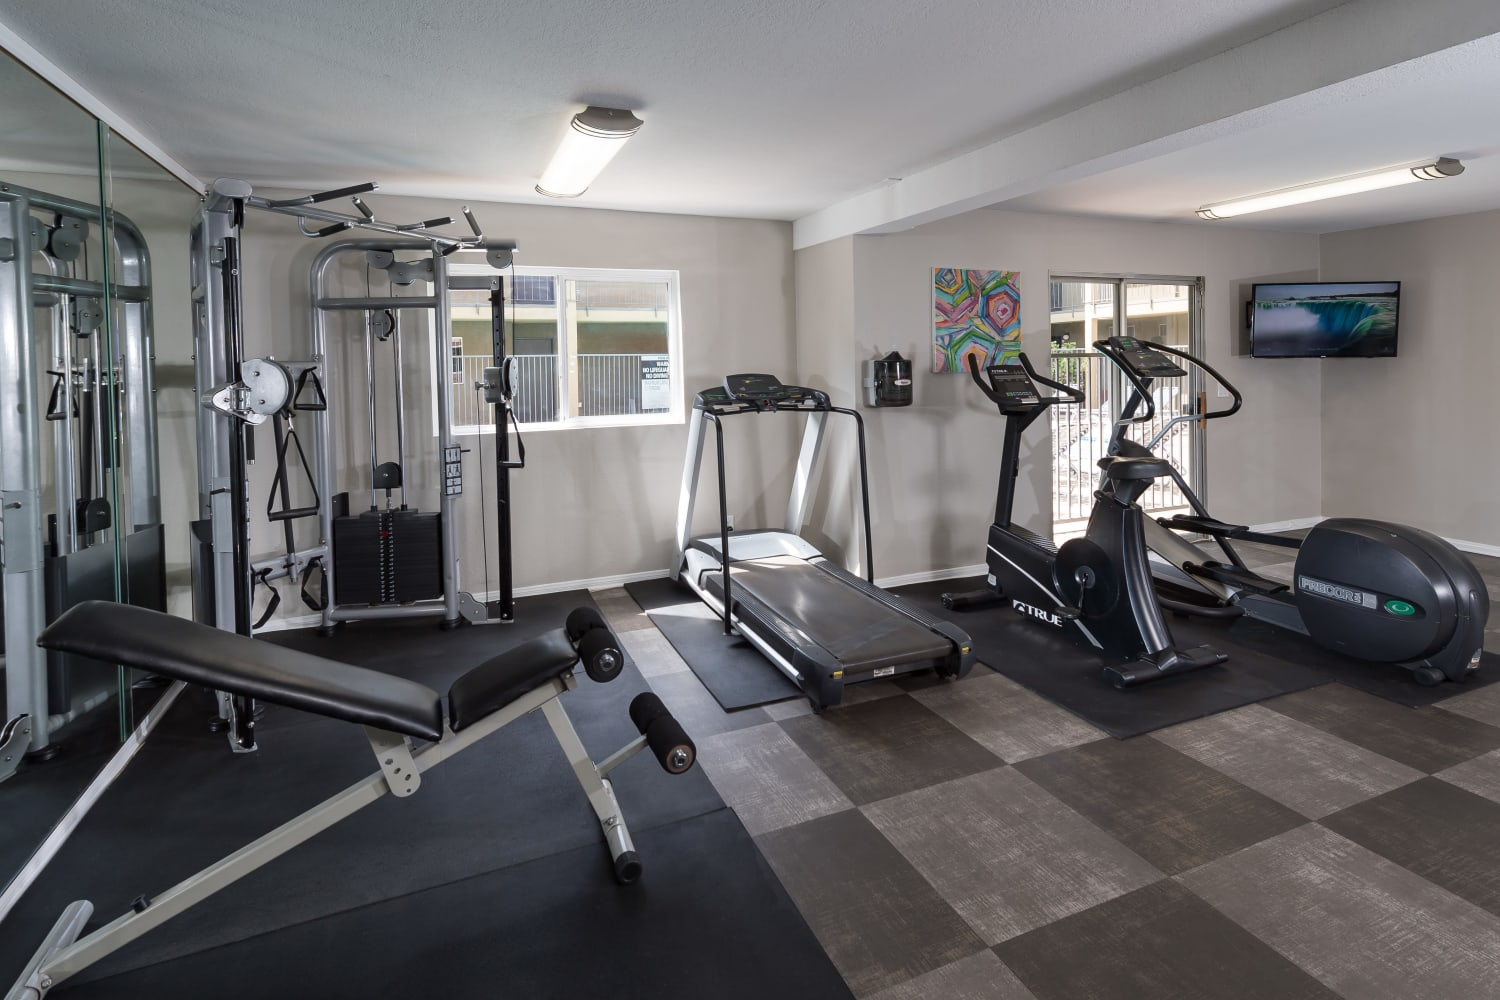 Fitness center at Legacy at Westglen in Glendale, California